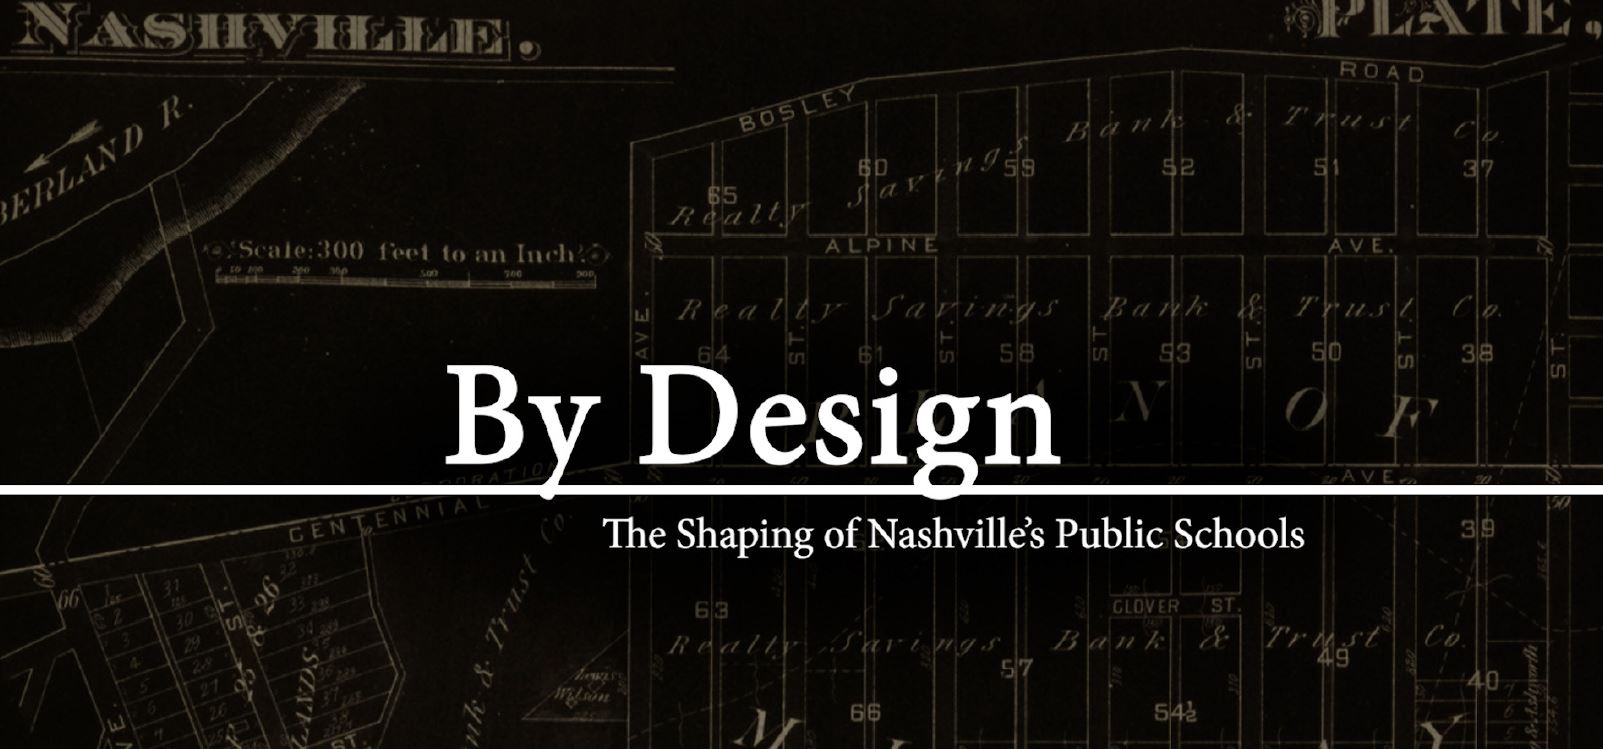 By Design: The Shaping of Nashville's Public Schools